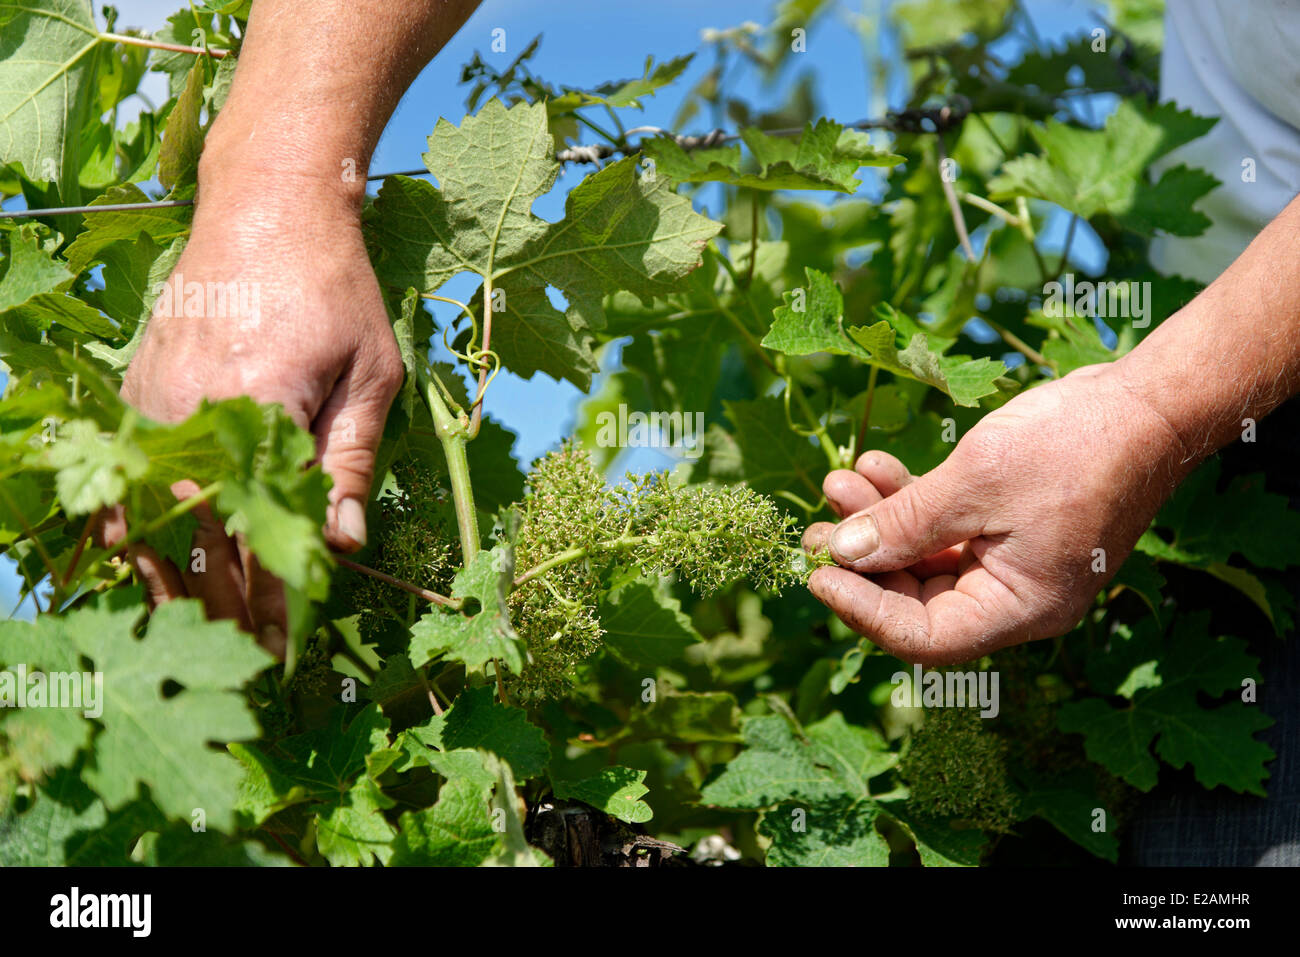 France, Herault, Saint Aunes, Chateau les Mazes domain, inspection of grapes in a vineyard - Stock Image